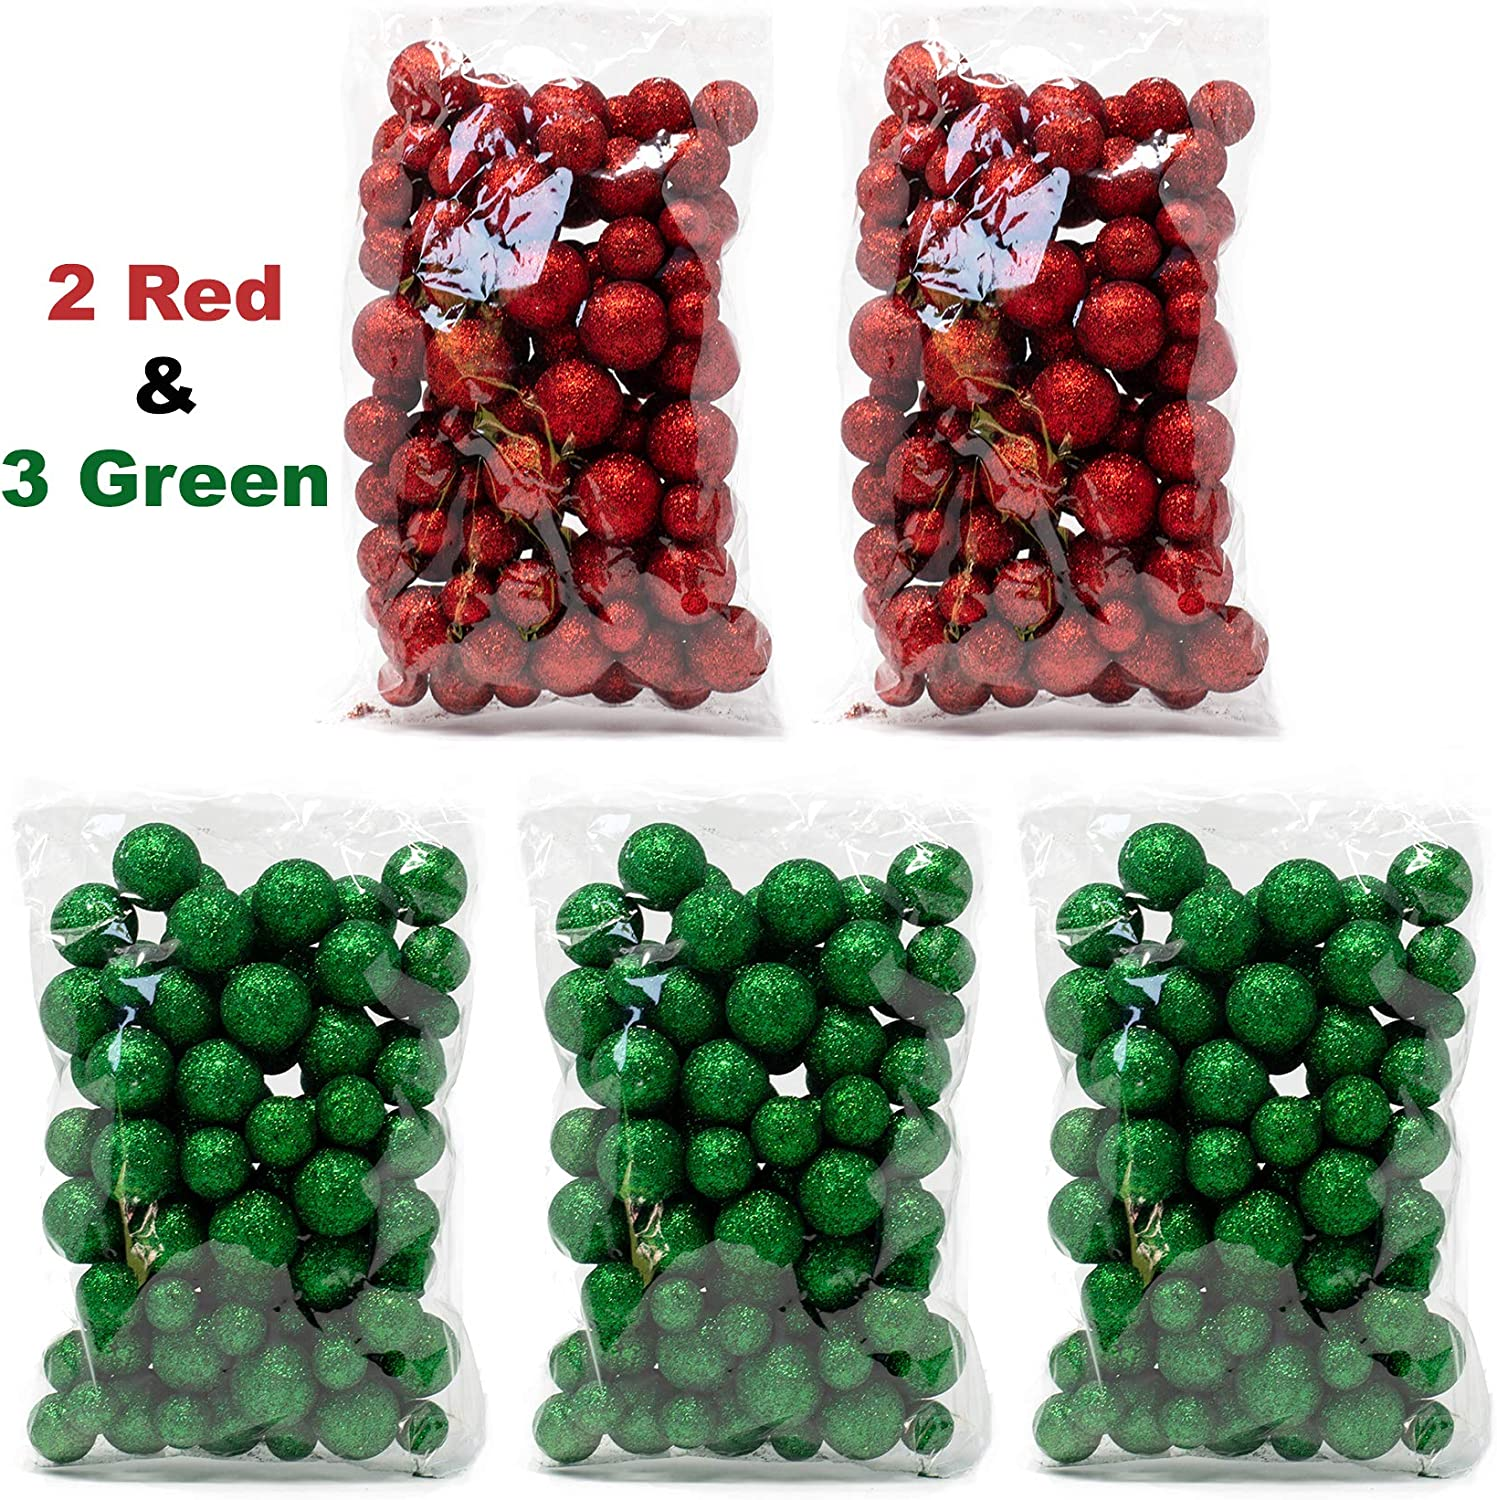 5 Bags Set of Red and Green Glittered Vase Filler Decorative Balls Glittery Colored Snow Balls BANBERRY DESIGNS Multi Colored Foam Balls Party Decor Table Scatter Decorations